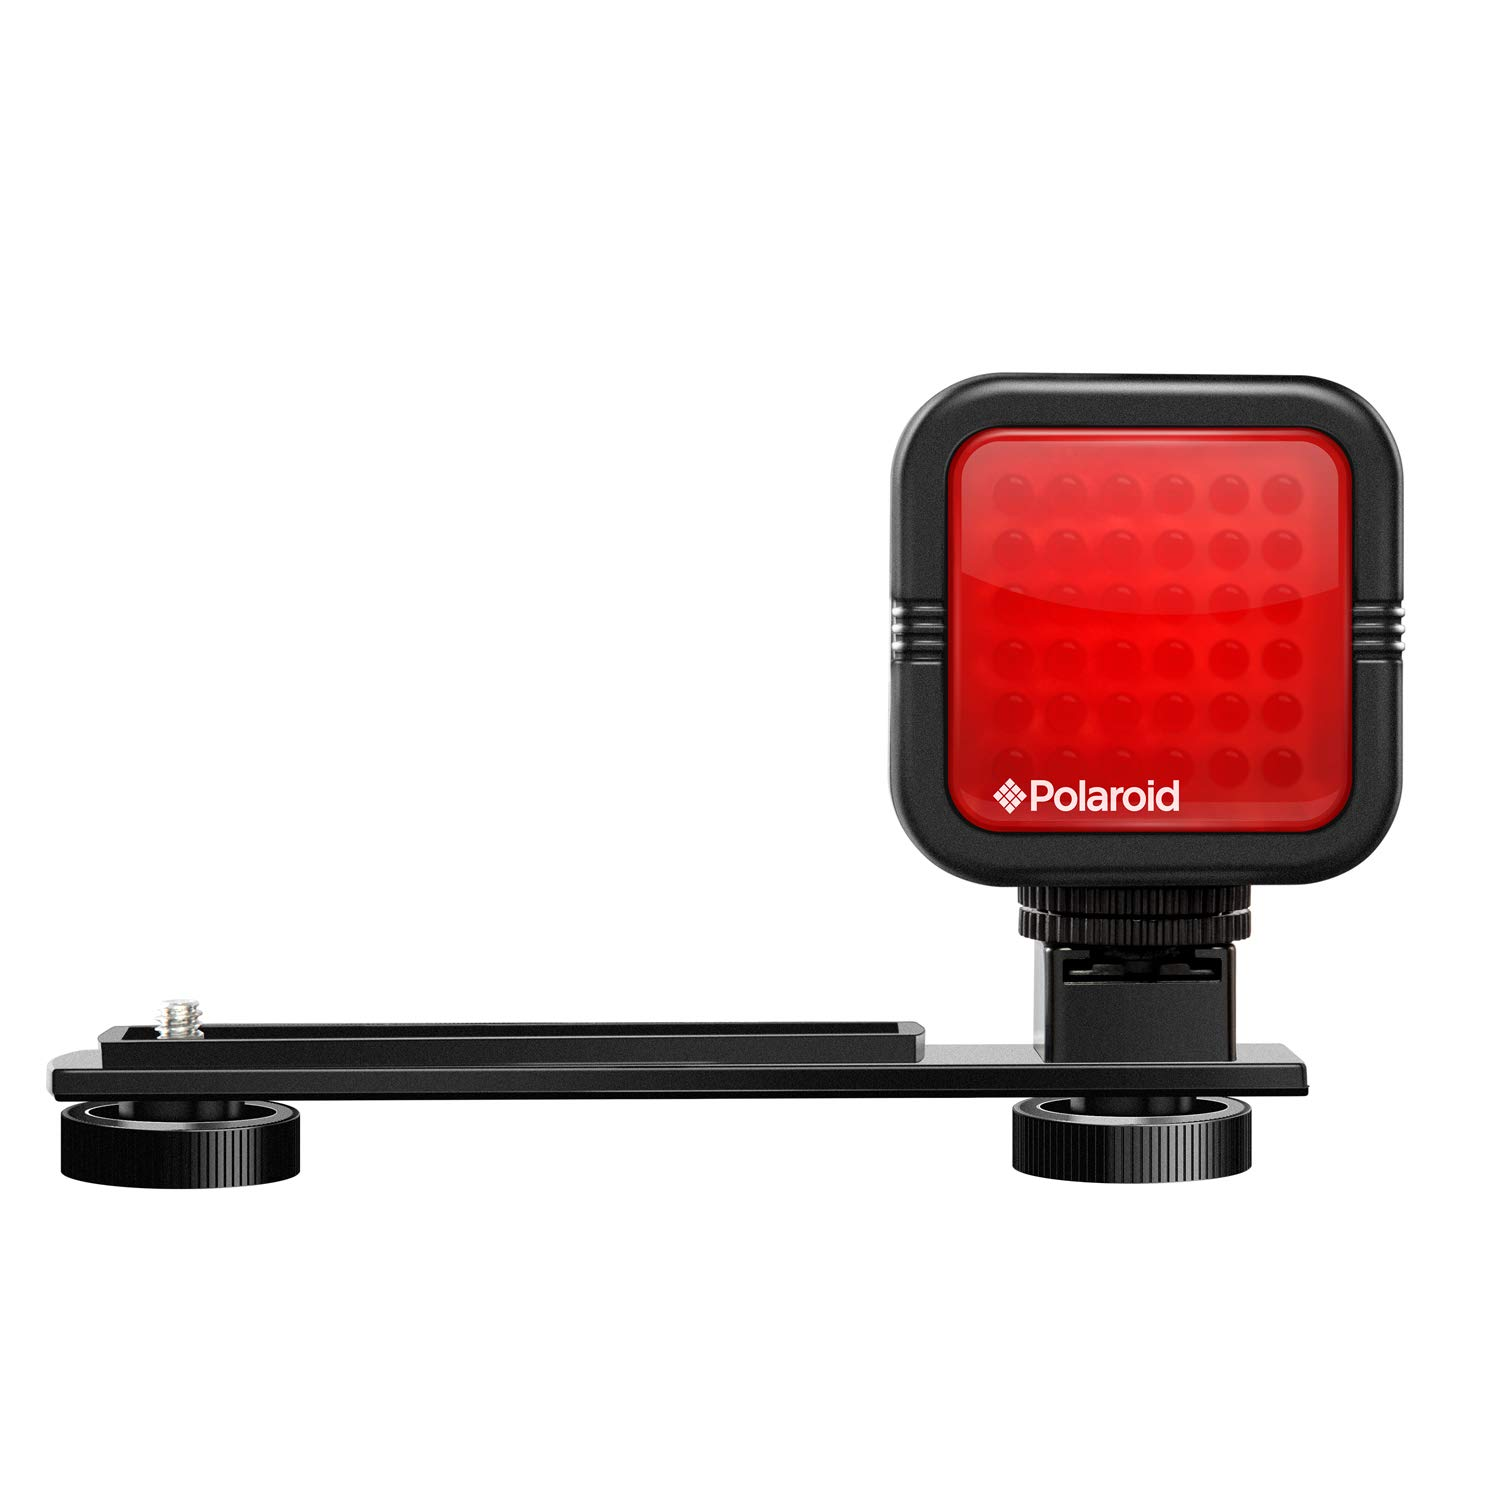 Polaroid Studio Series IR Light Bar -Rechargeable 36 IR LED Light for Use w/ All IR Compatible Cameras & Camcorders - Includes Diffuser Lens, Built-In Li-Ion Battery, Charger & Hot Shoe Mount by Polaroid